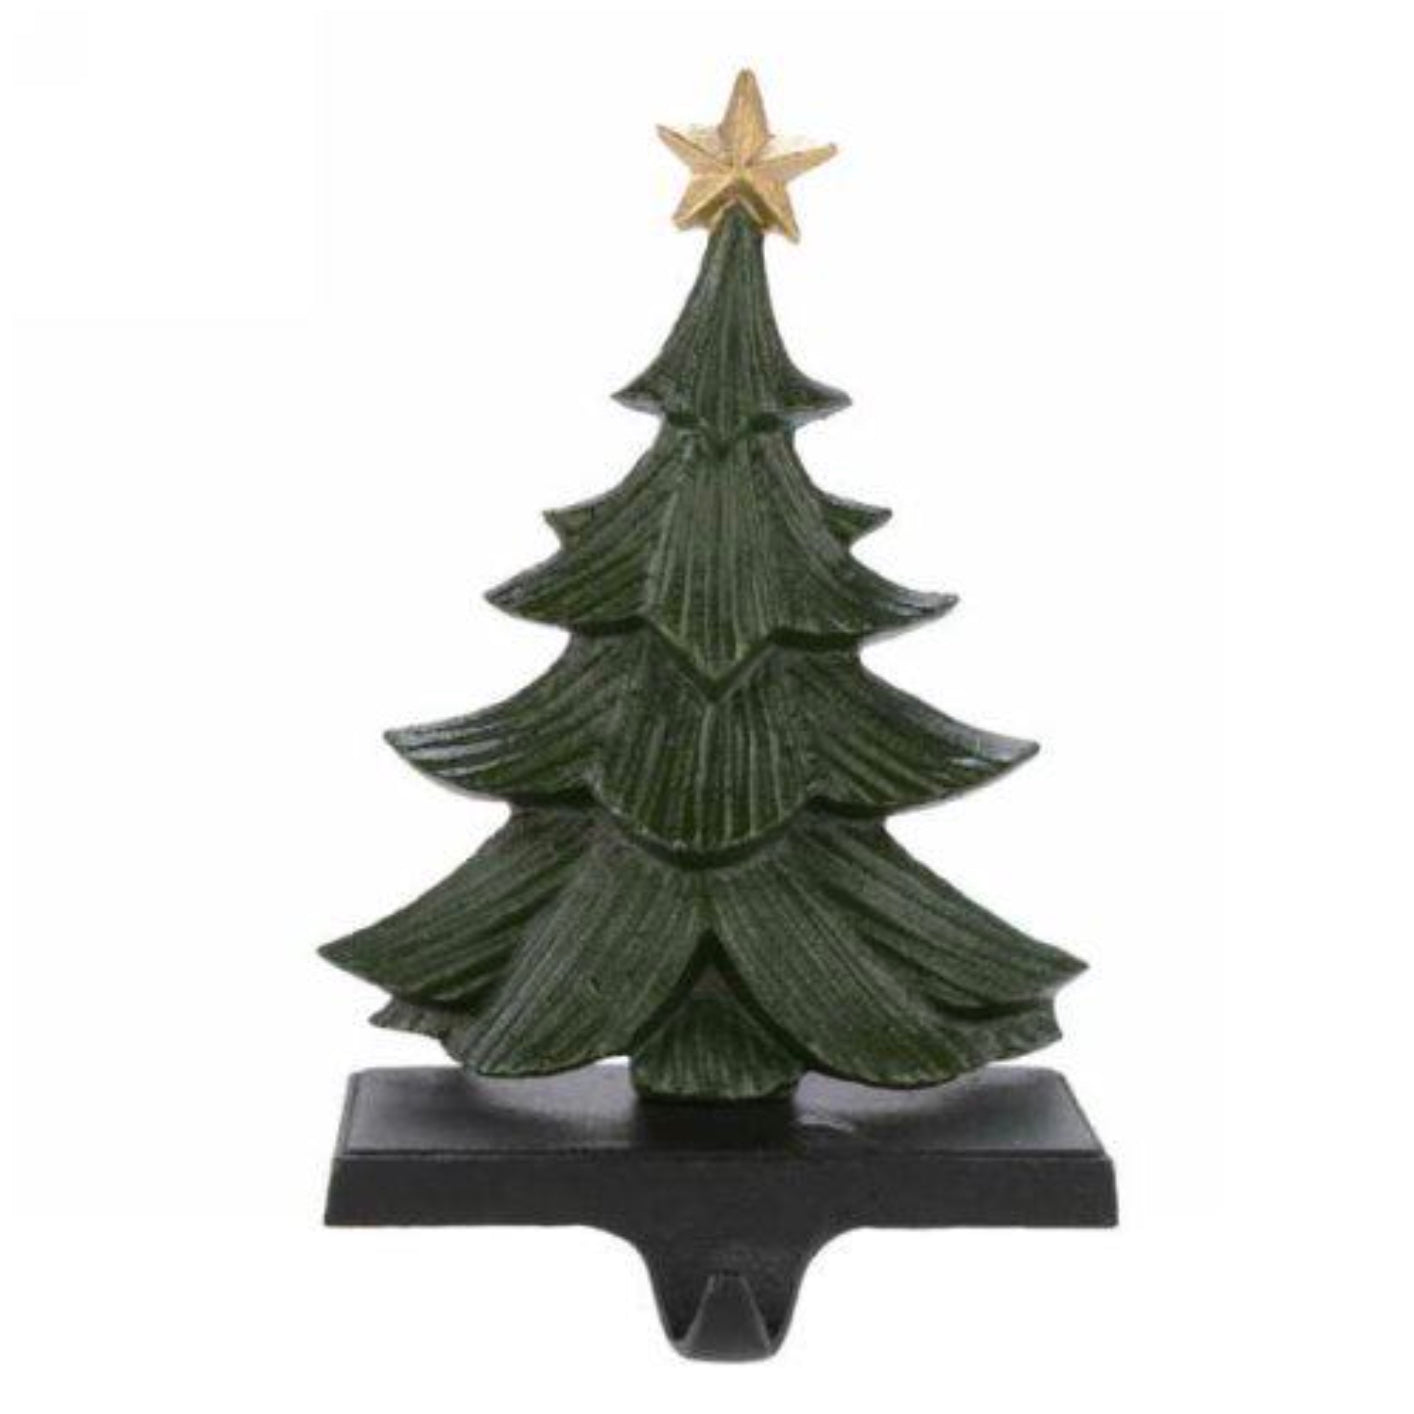 Green Cast Iron Christmas Tree Stocking Holder